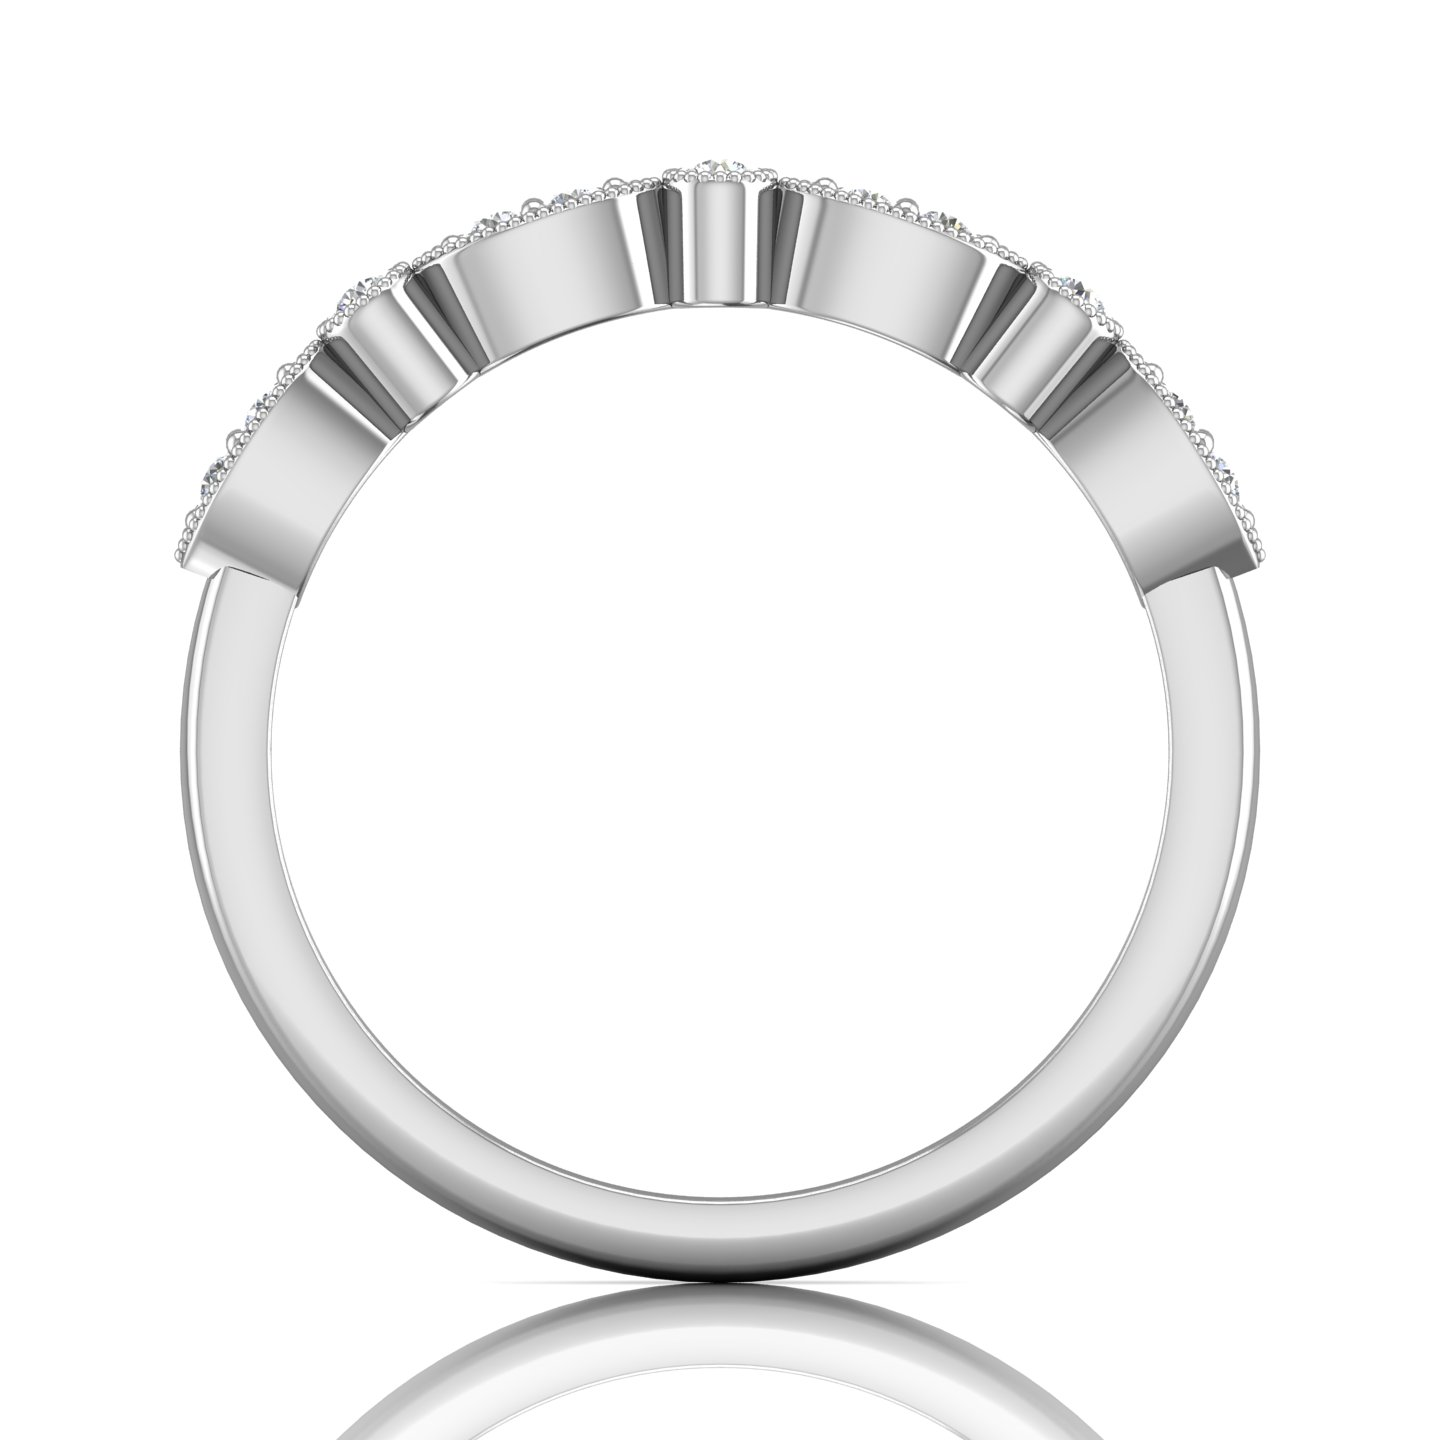 Rings - 14K White Gold FlyerFit Micropave Bead Set Wedding Band - image #2